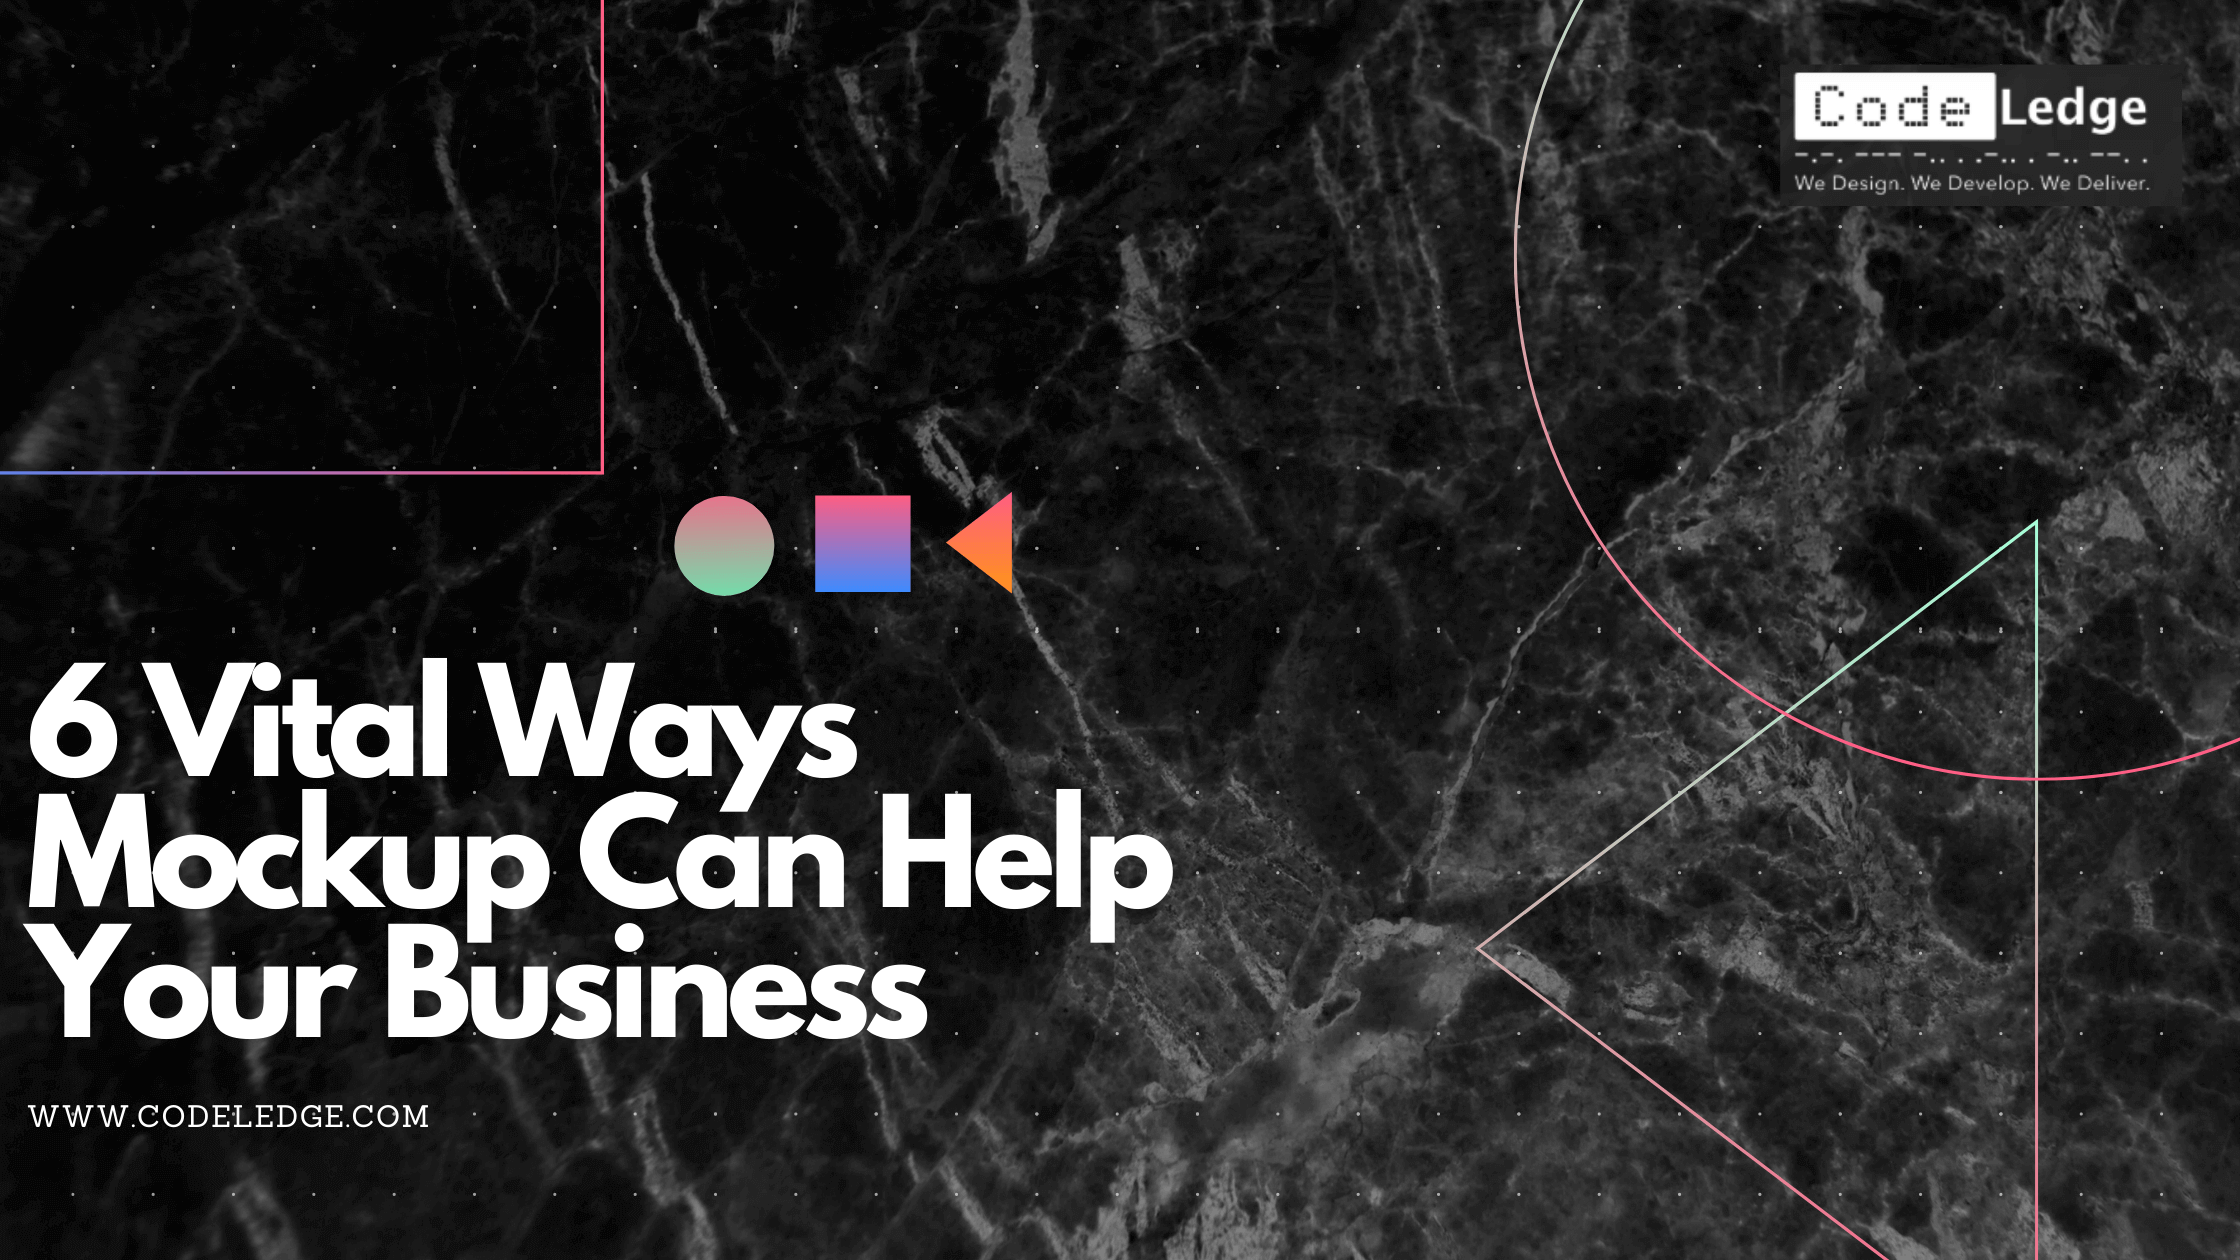 6 Vital Ways Mockup Can Help Your Business